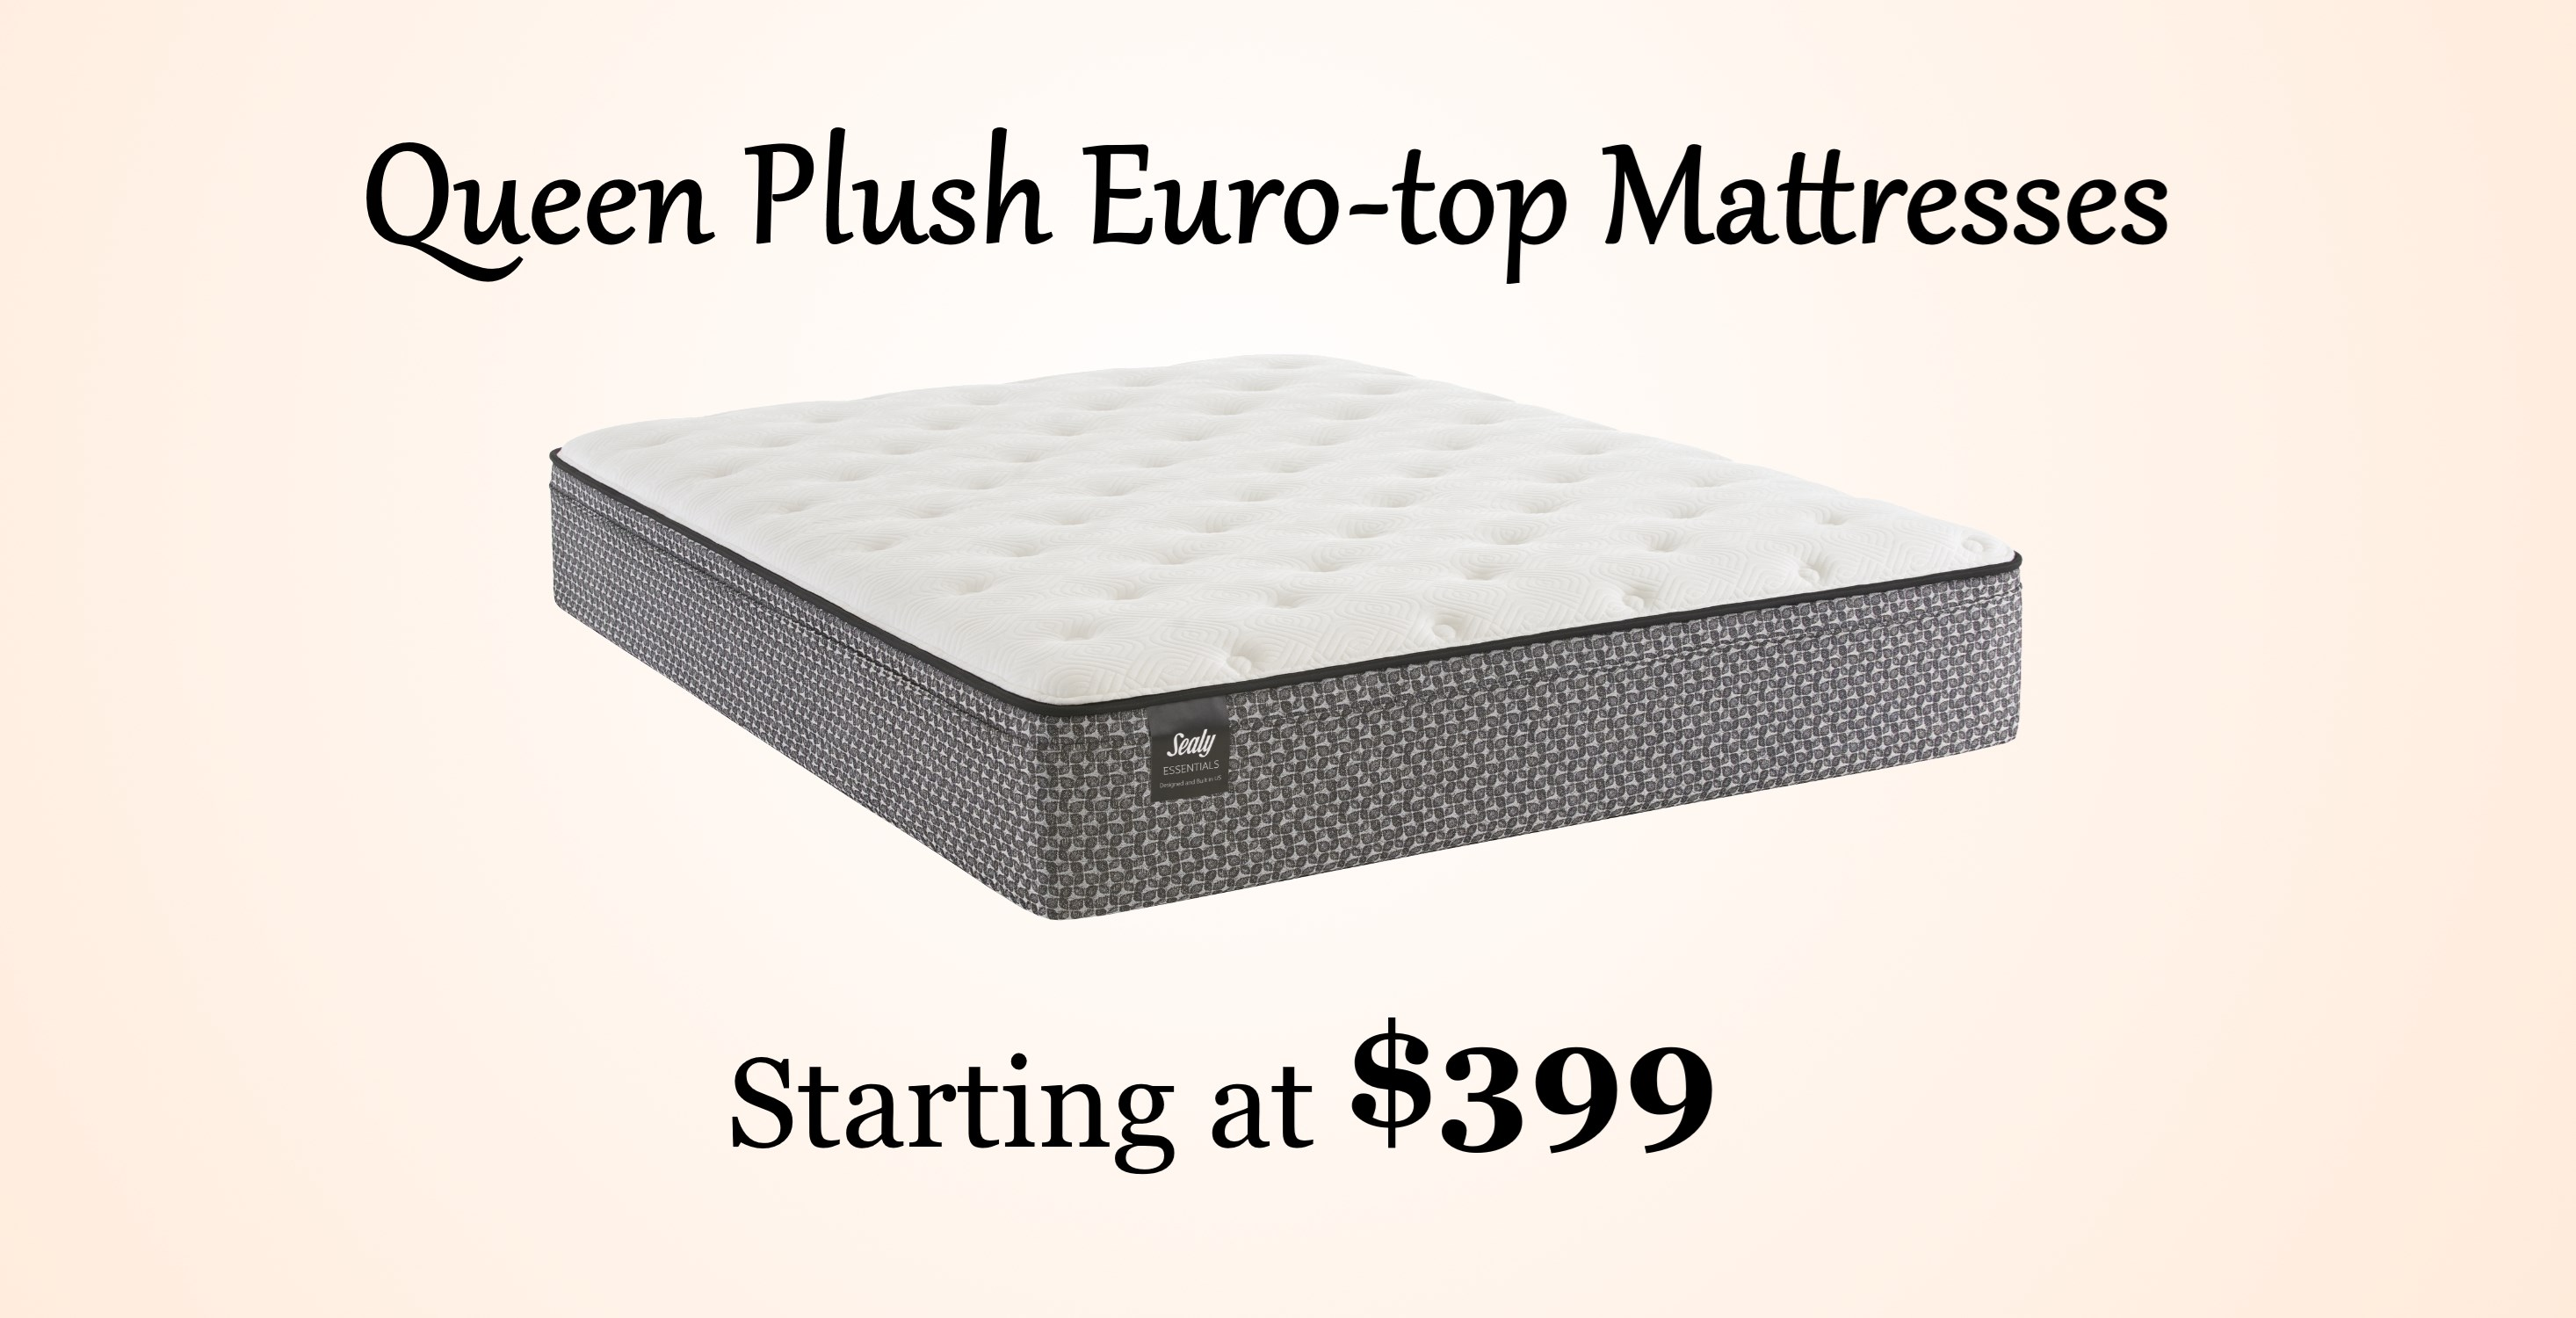 Happiness Mattress for $399